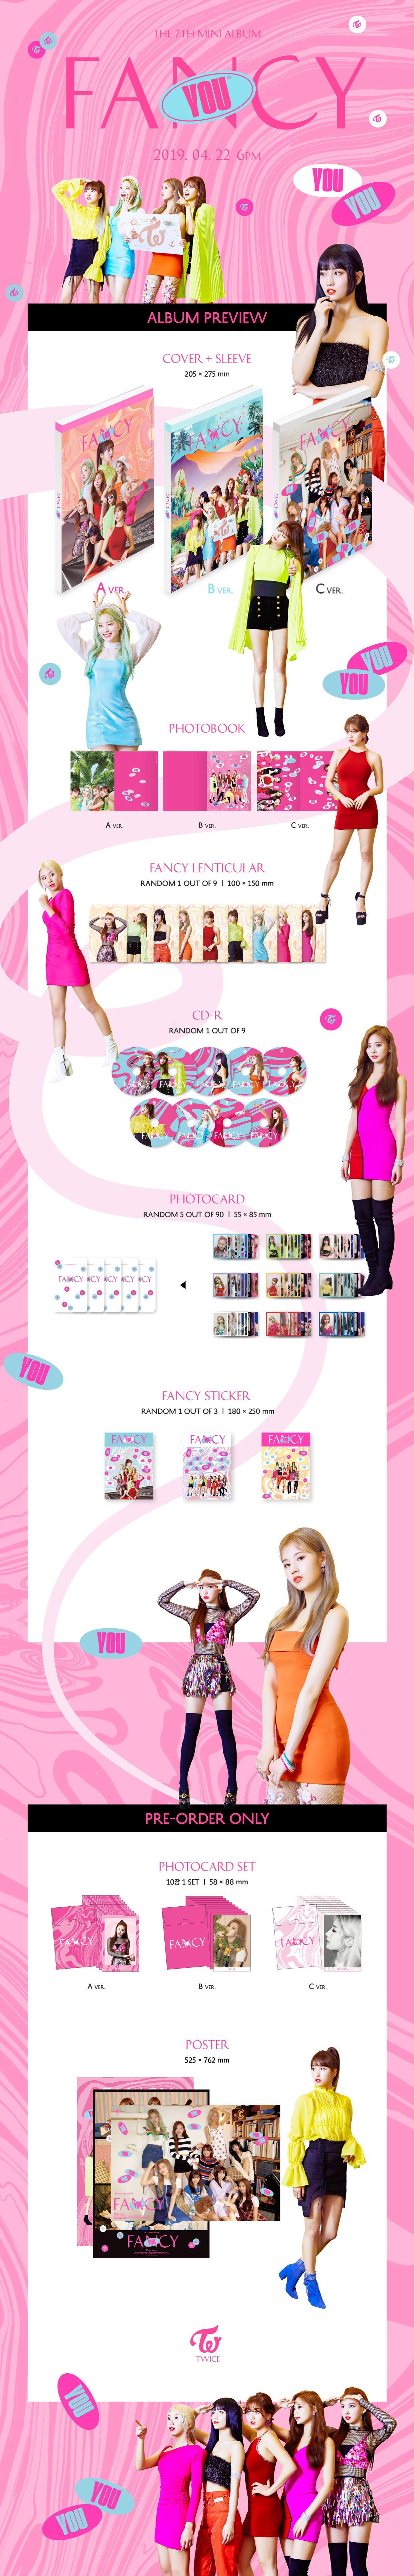 TWICE Fancy You album packaging.png